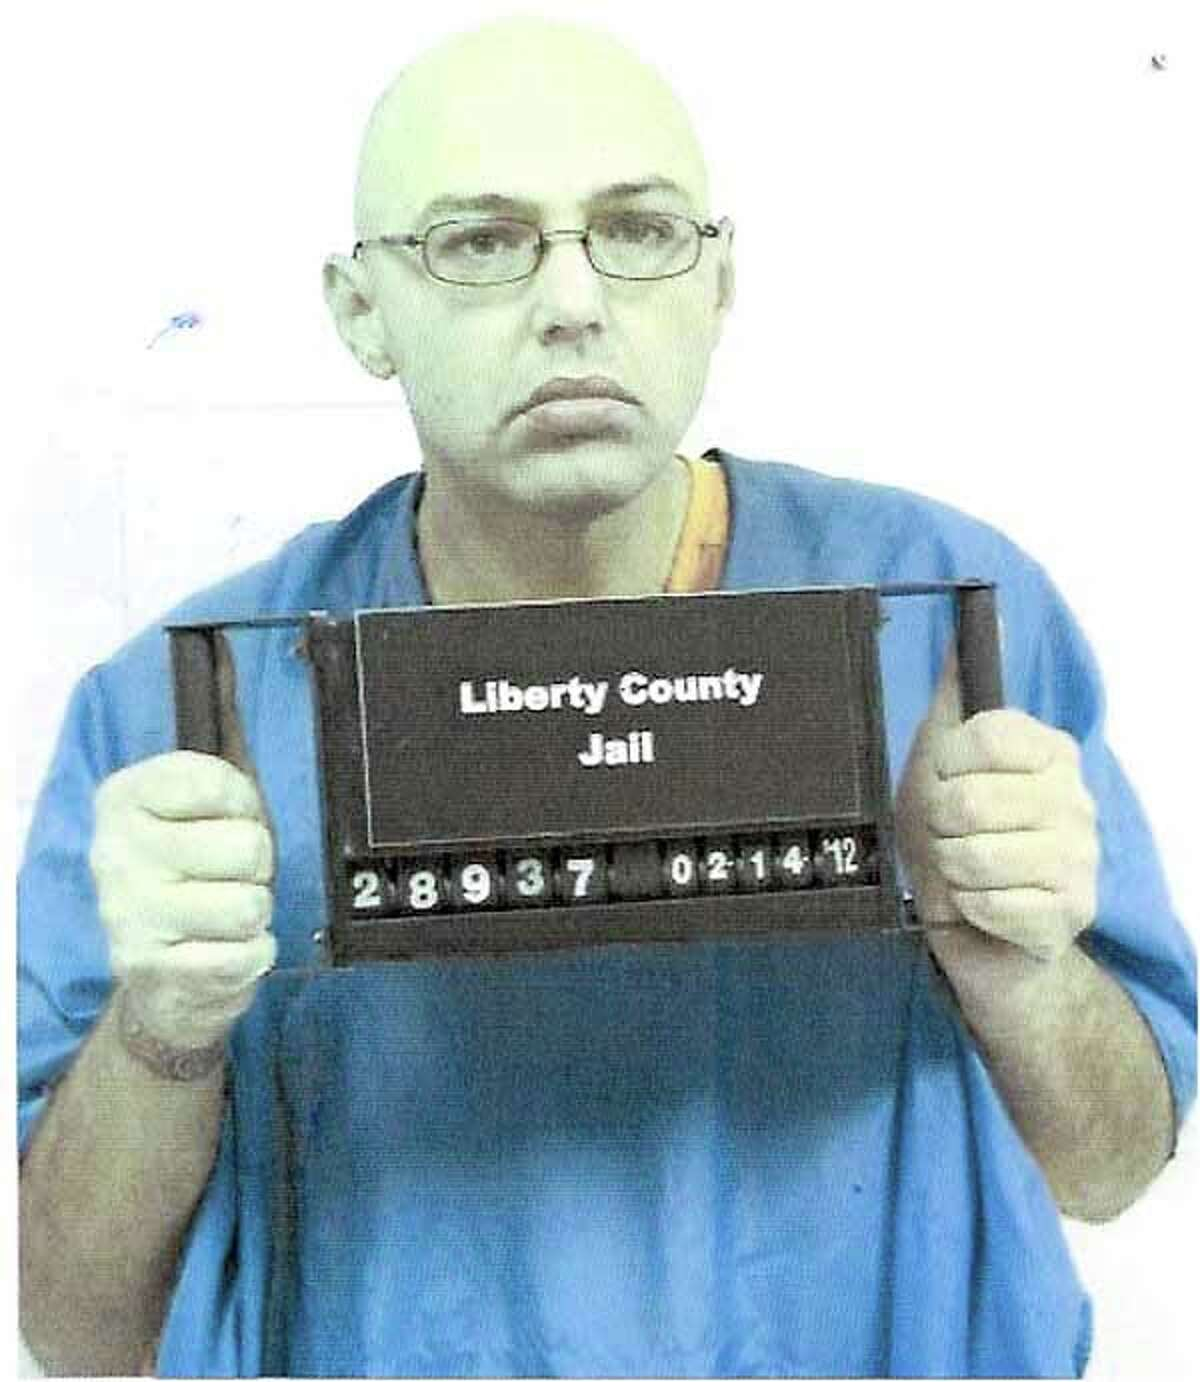 Kevin Boney faces numerous felony charges including aggravated assault with a deadly weapon on a family member and aggravated assault.